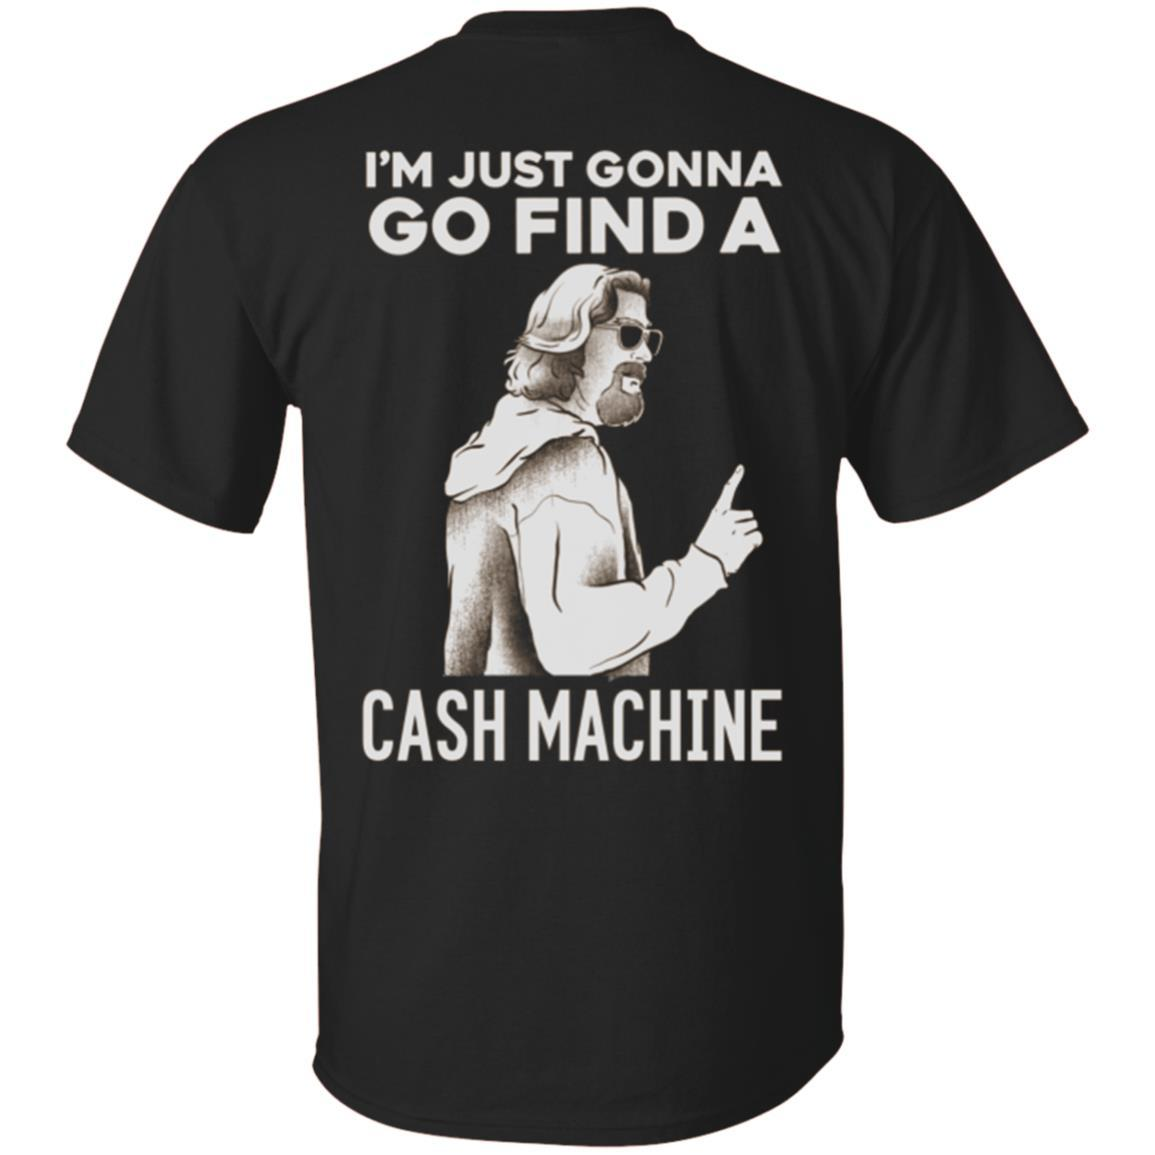 T-Shirts - Cash Machine Unisex Tee